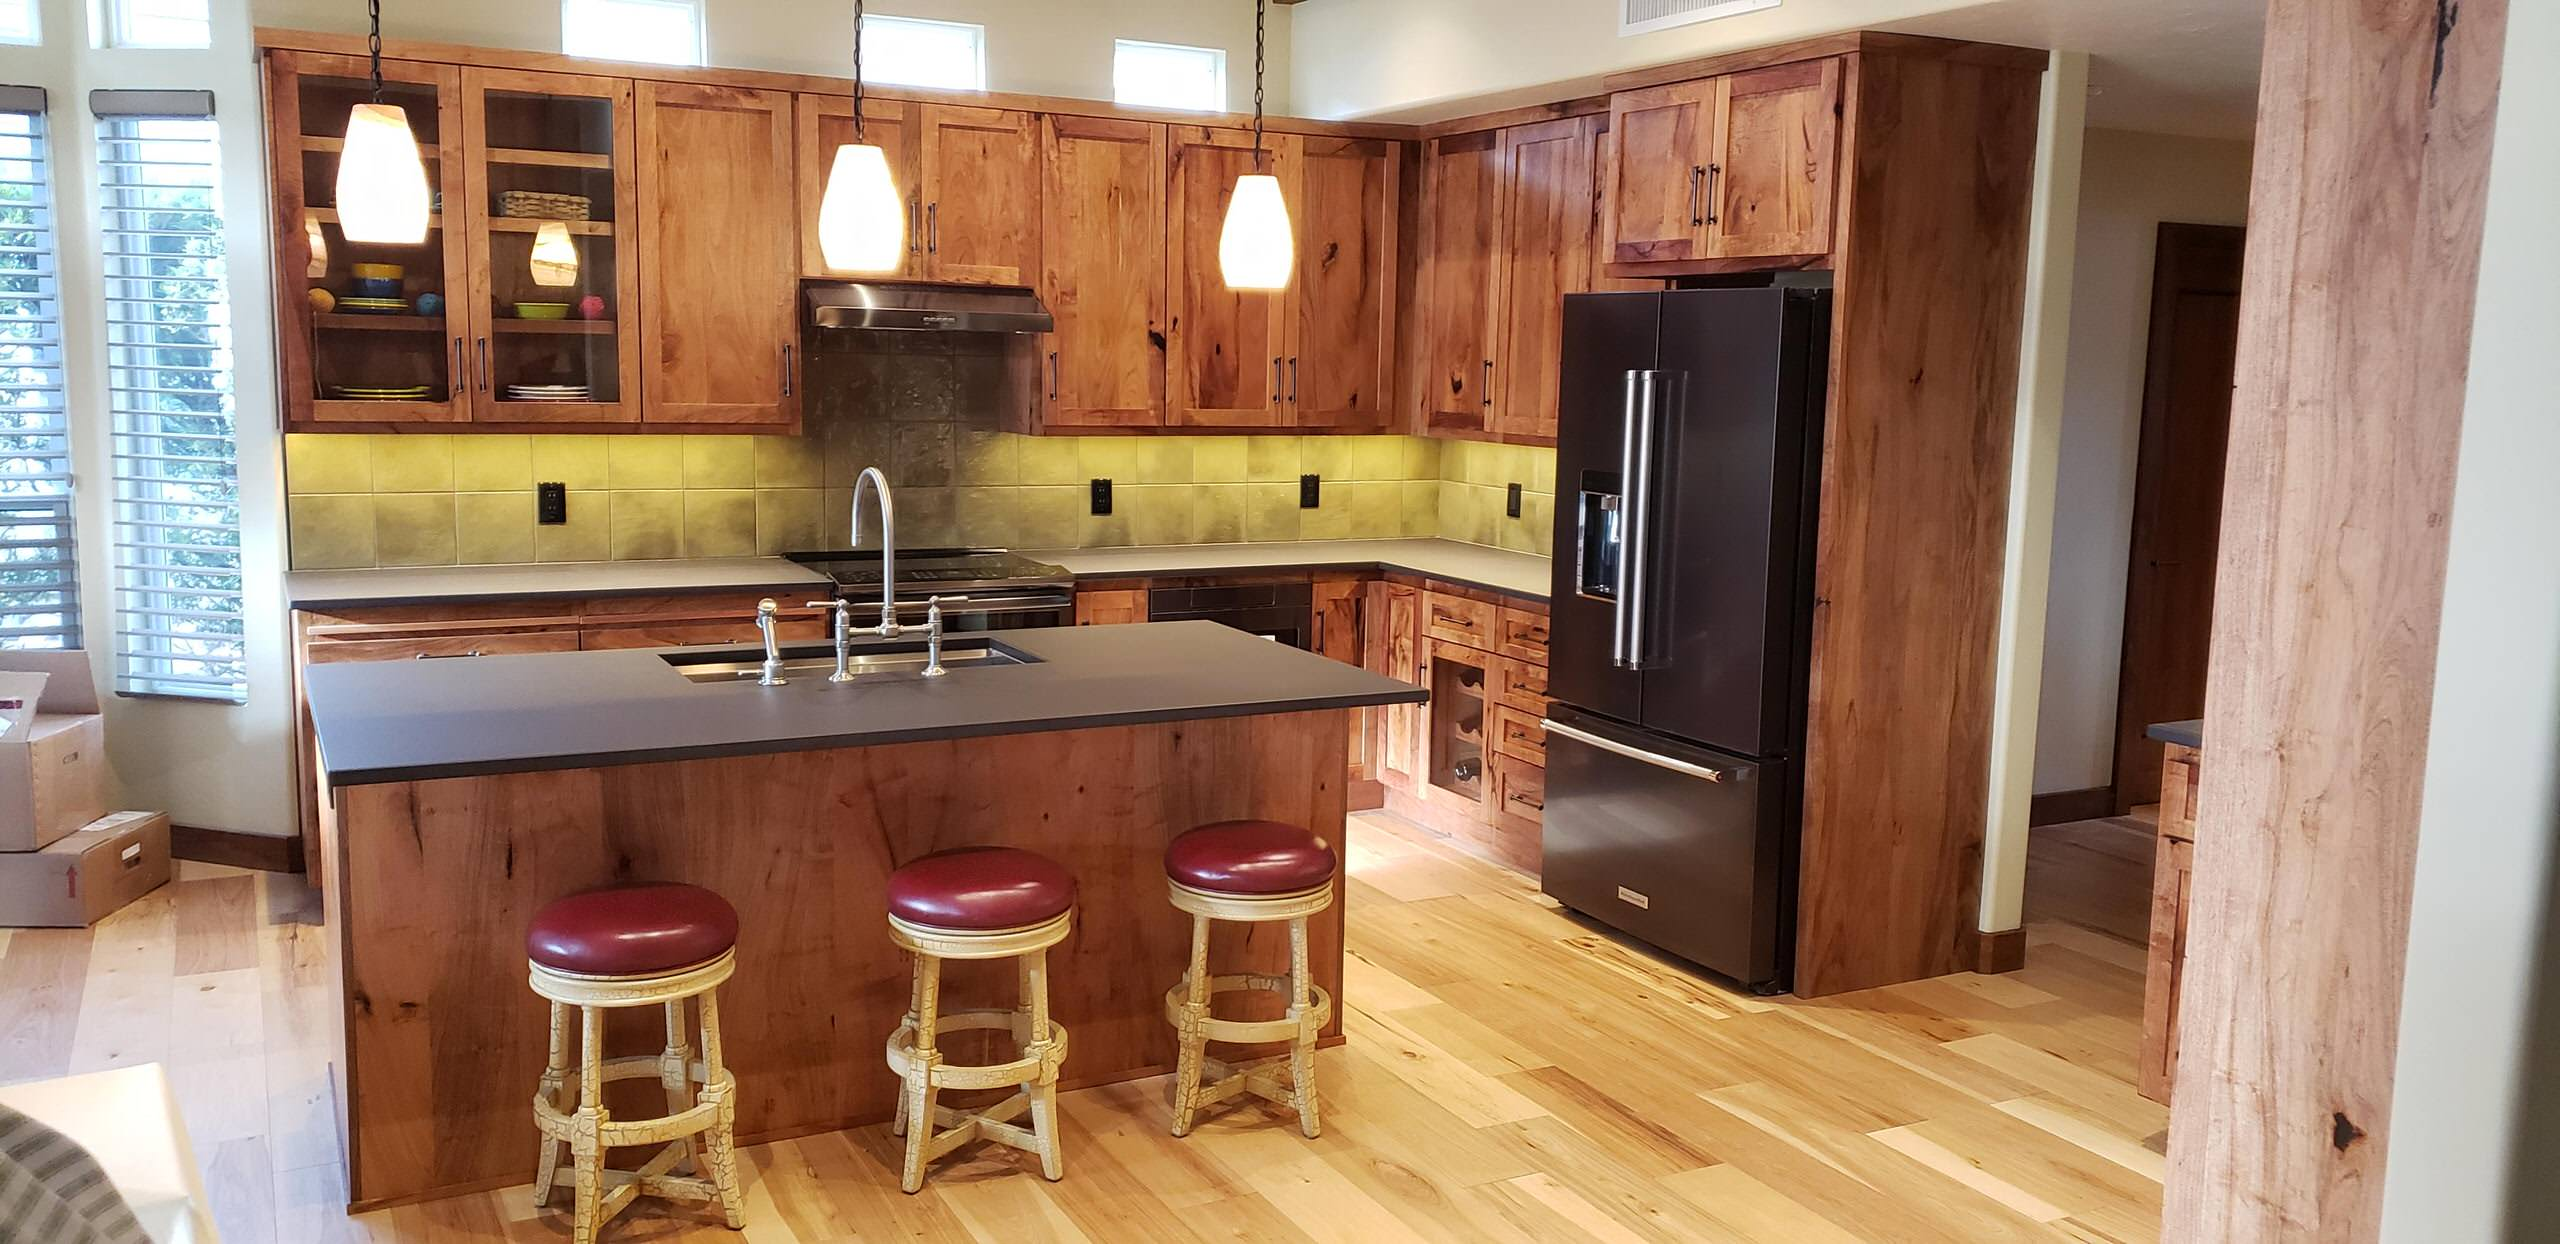 Wood Cabinets - Kitchen Remodel